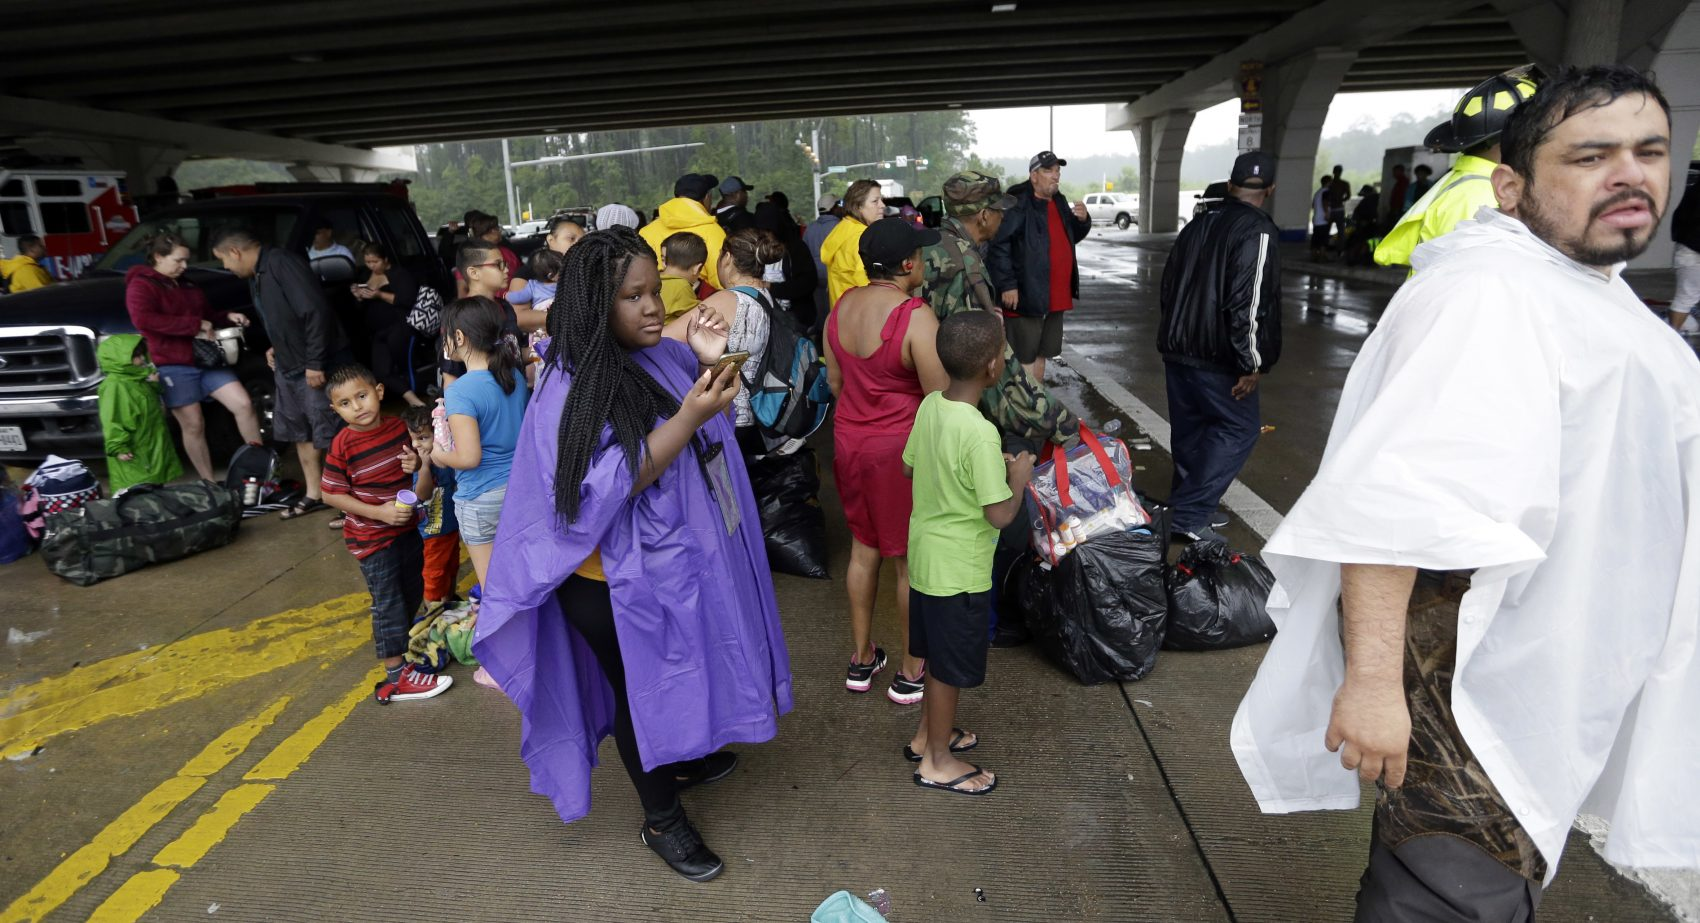 Evacuees waits to be bused to safety after being evacuated from their homes as floodwaters from Tropical Storm Harvey rise Monday in Houston. (David J. Phillip/AP)